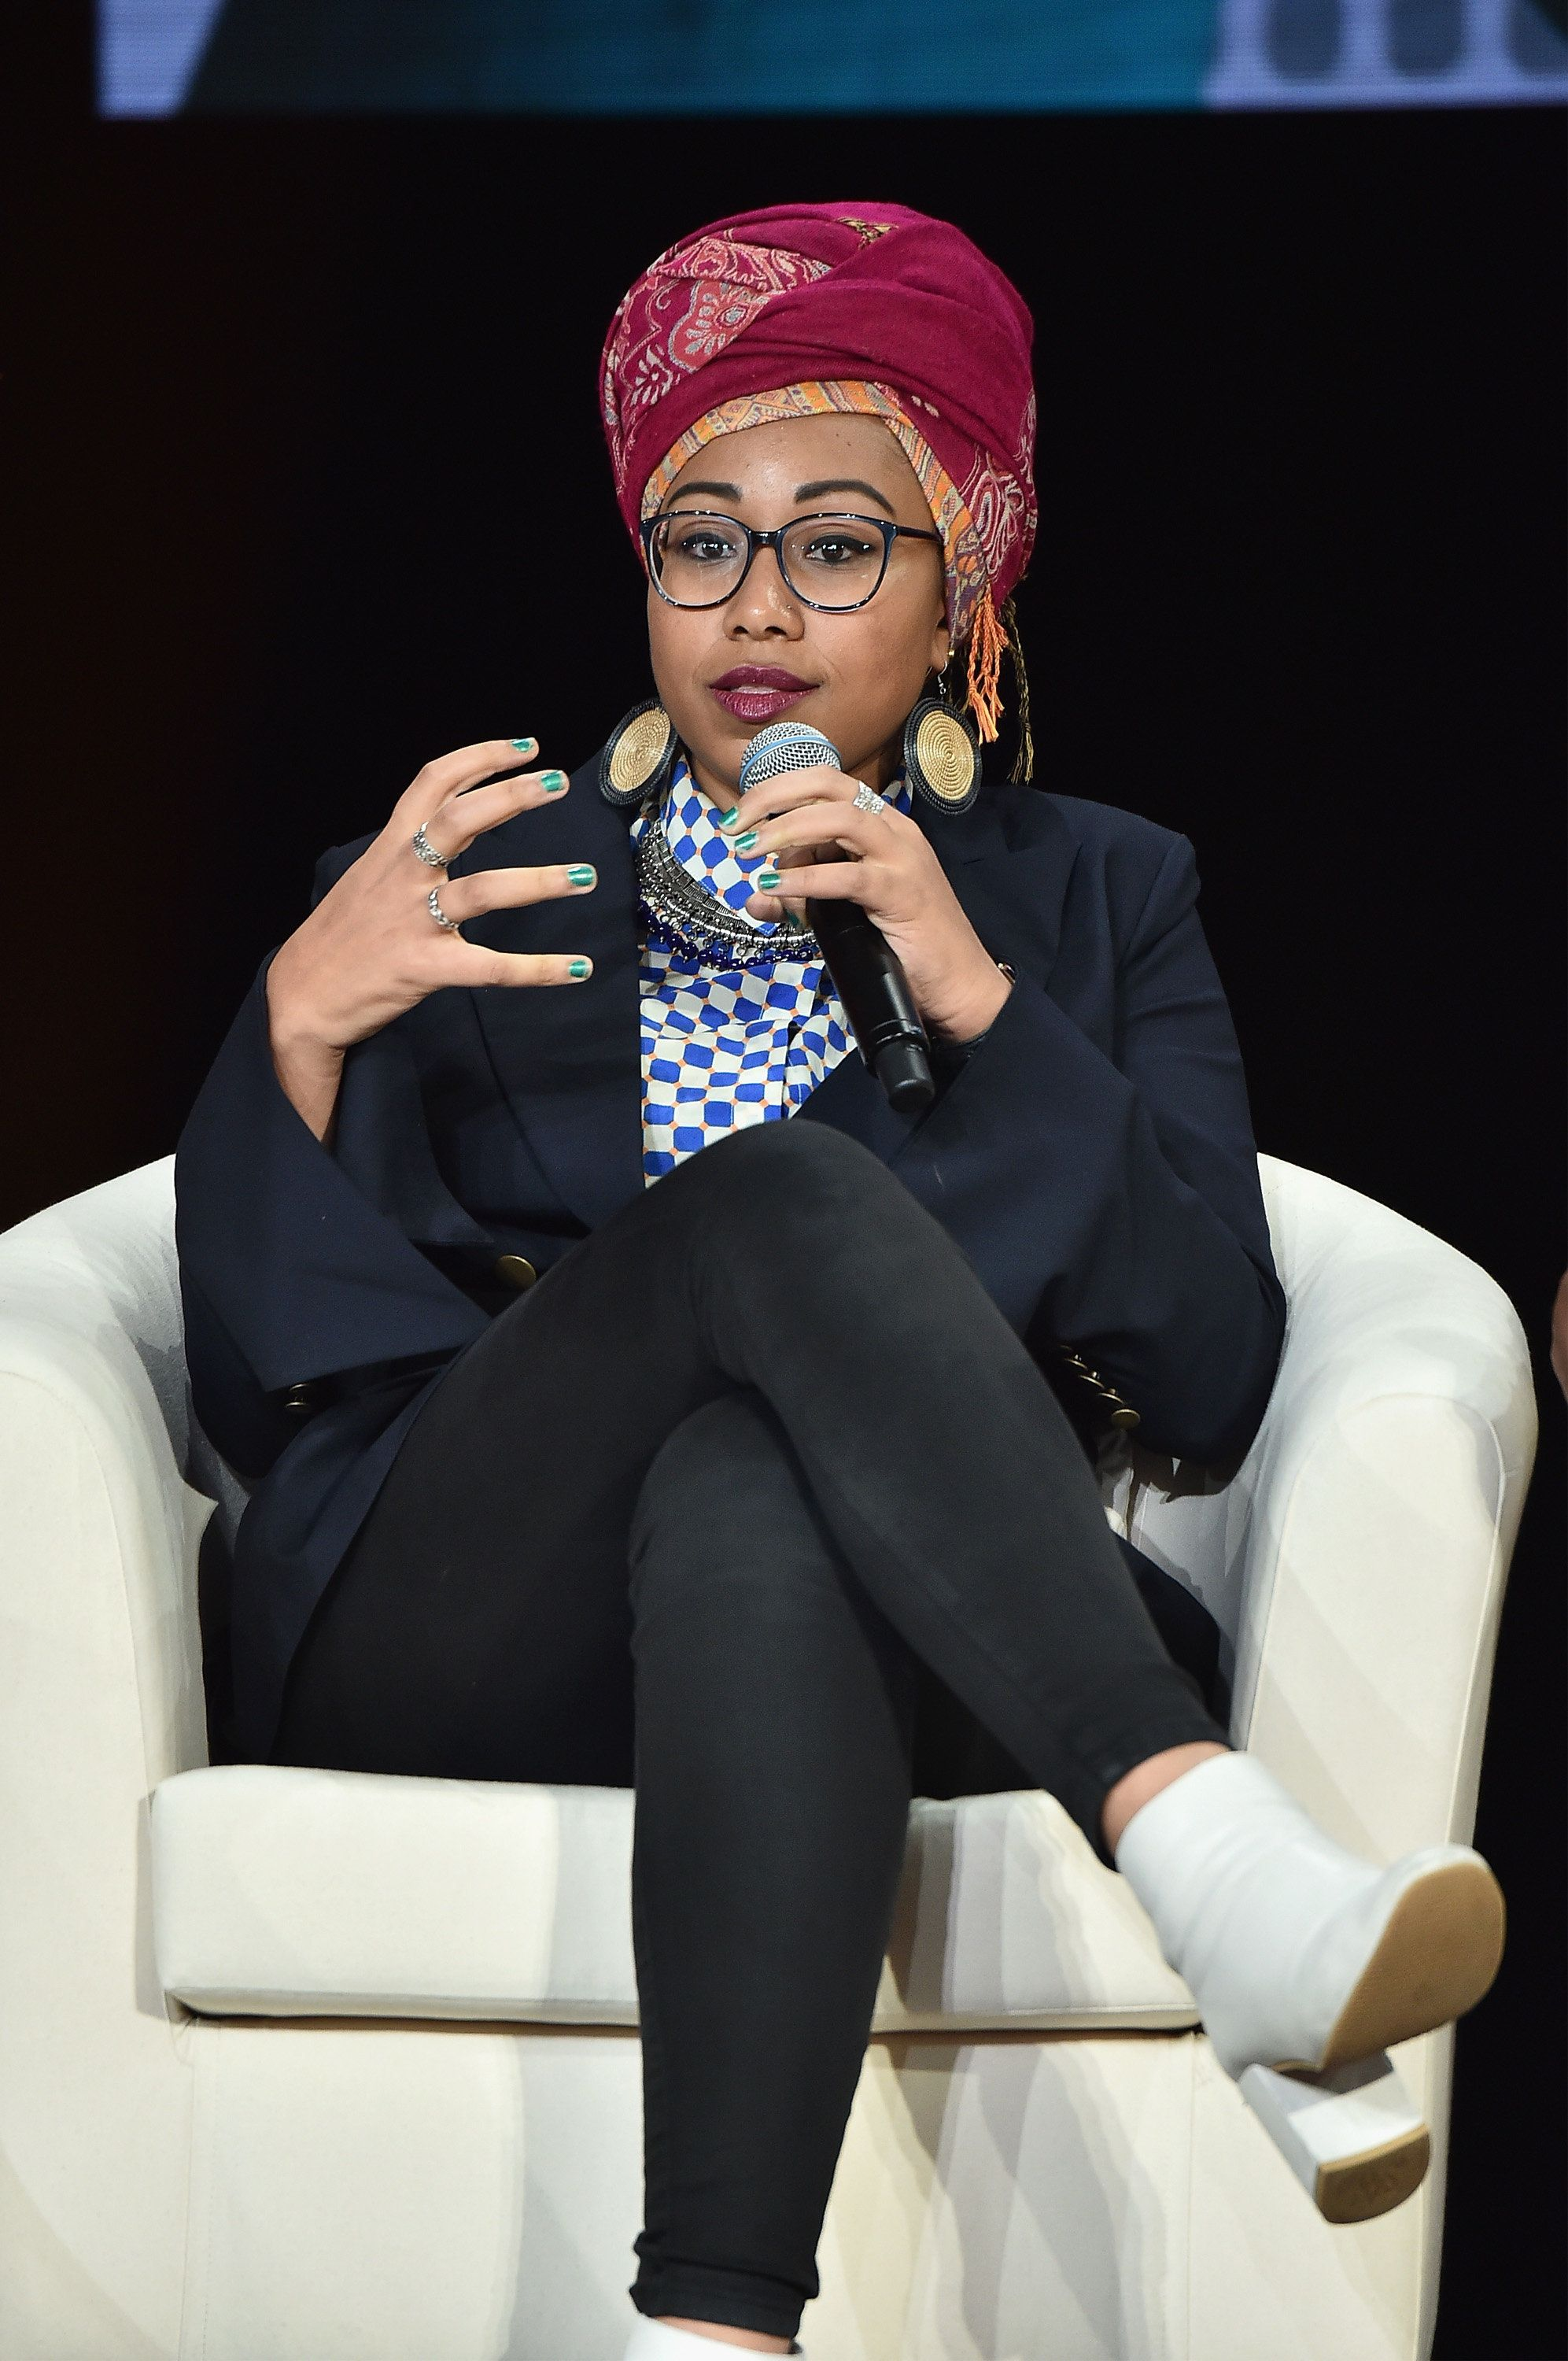 NEW YORK, NY - SEPTEMBER 19:  Author and activist Yassmin Abdel-Magied speaks onstage during Global Citizen: Movement Makers at NYU Skirball Center on September 19, 2017 in New York City.  (Photo by Theo Wargo/Getty Images for Global Citizen)